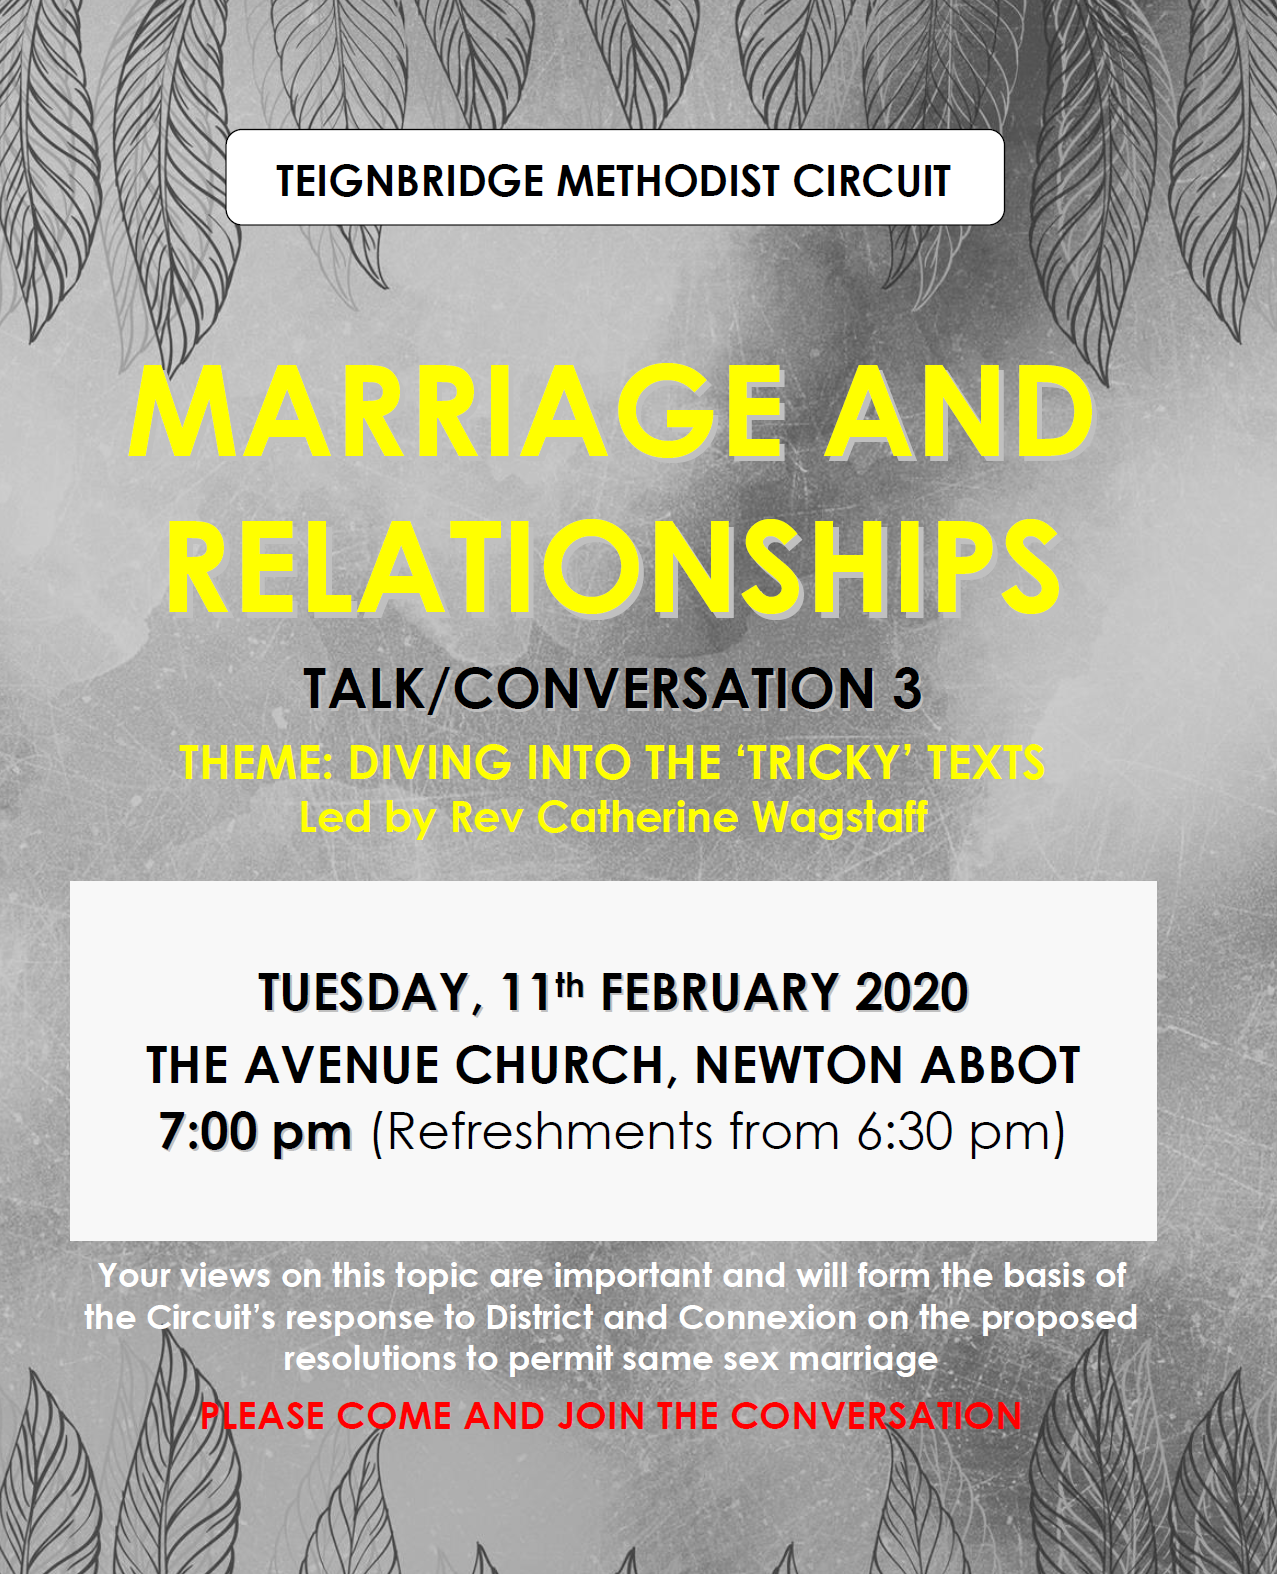 Marriage and Relationships 3 @ The Avenue Church, Newton Abbot